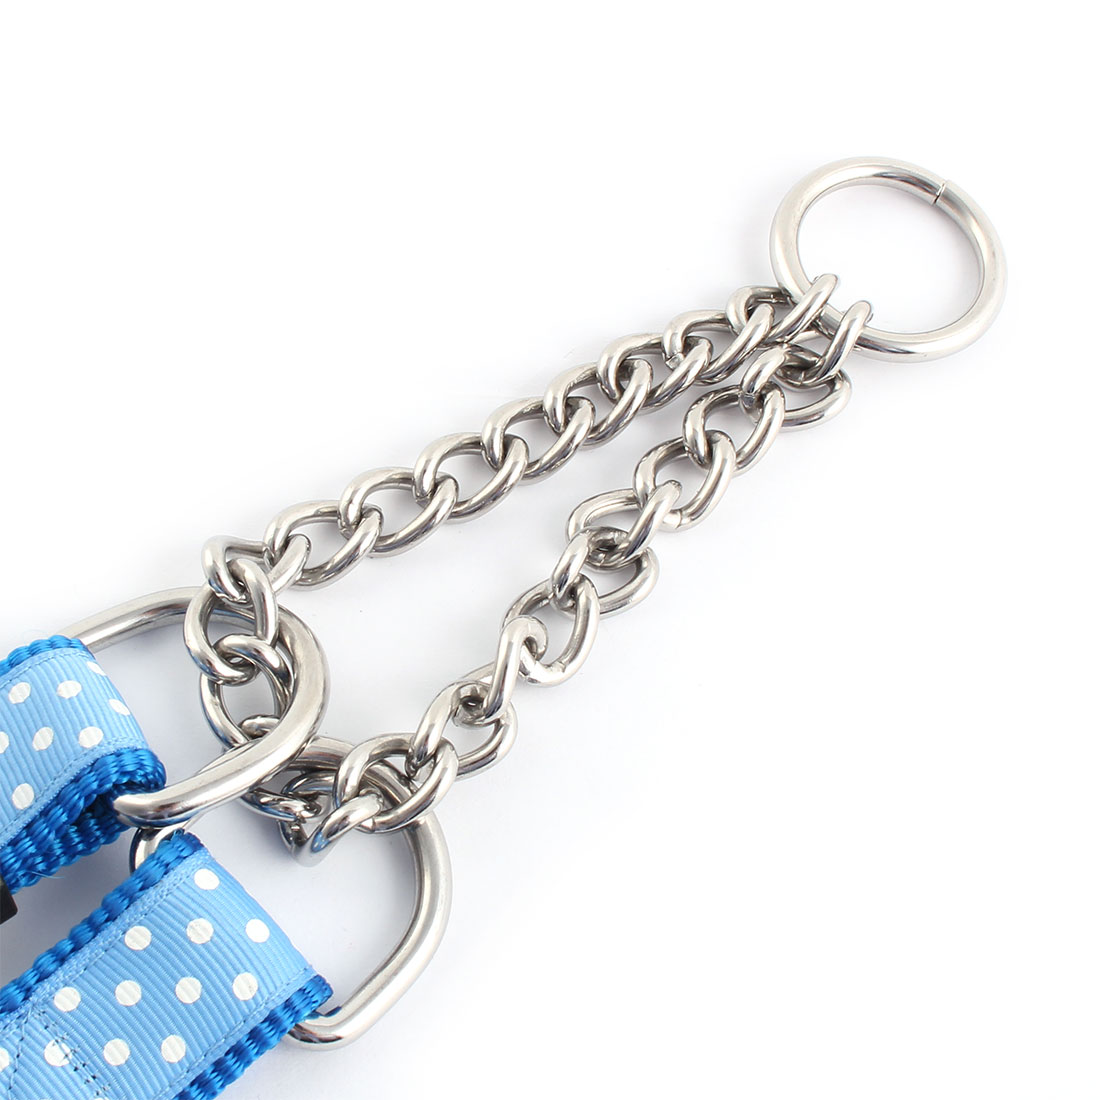 Pet Outdoor Polka Dot Print Adjustable Traction Rope Dog Neck Chain Leash Blue - image 1 de 2